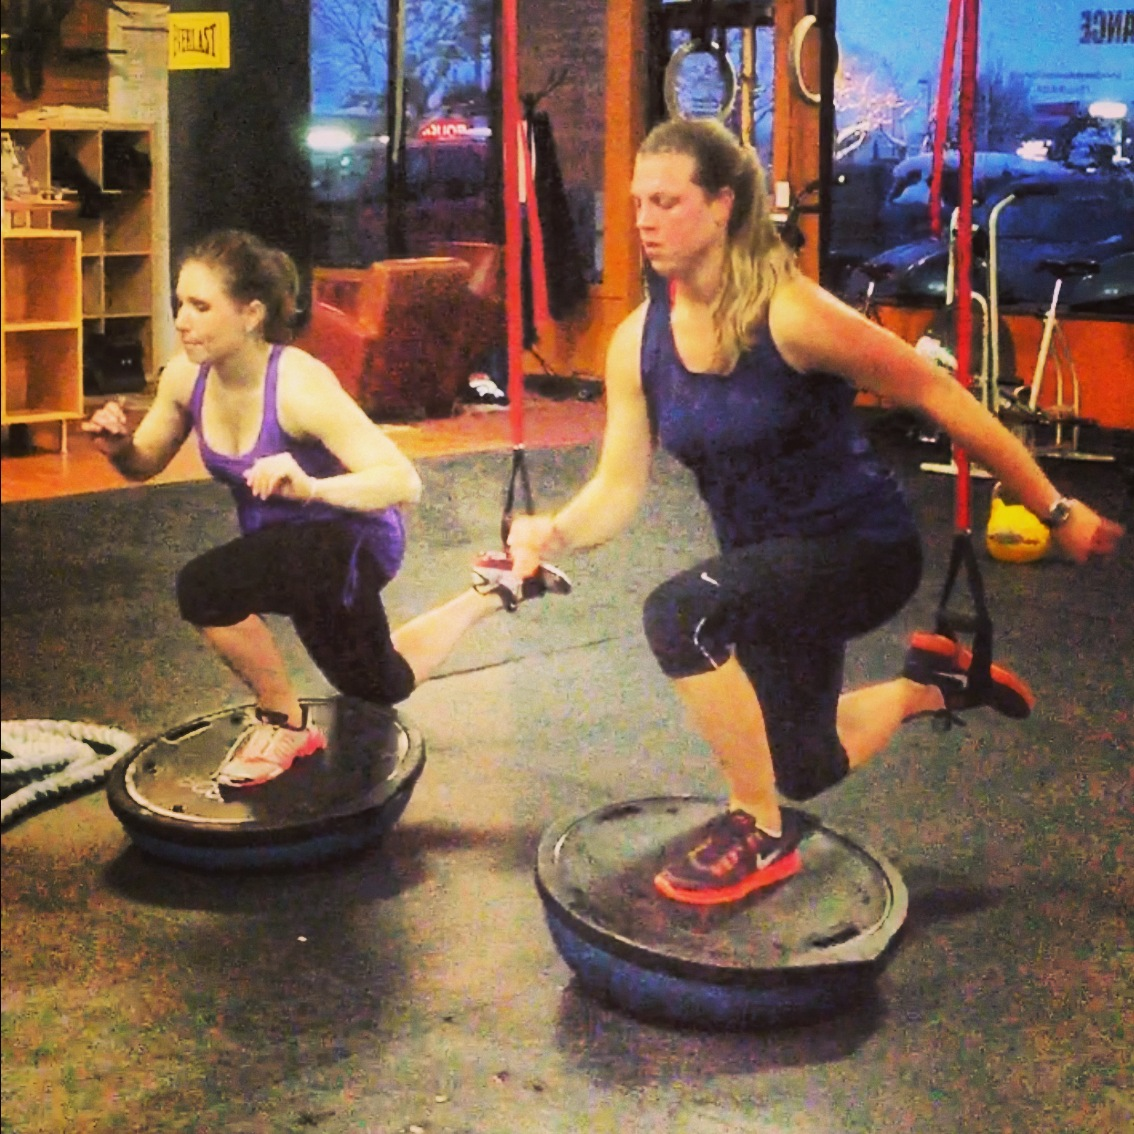 Courtney and Kristin perform single leg squats on a BOSU ball. One of the more challenging group session exercises